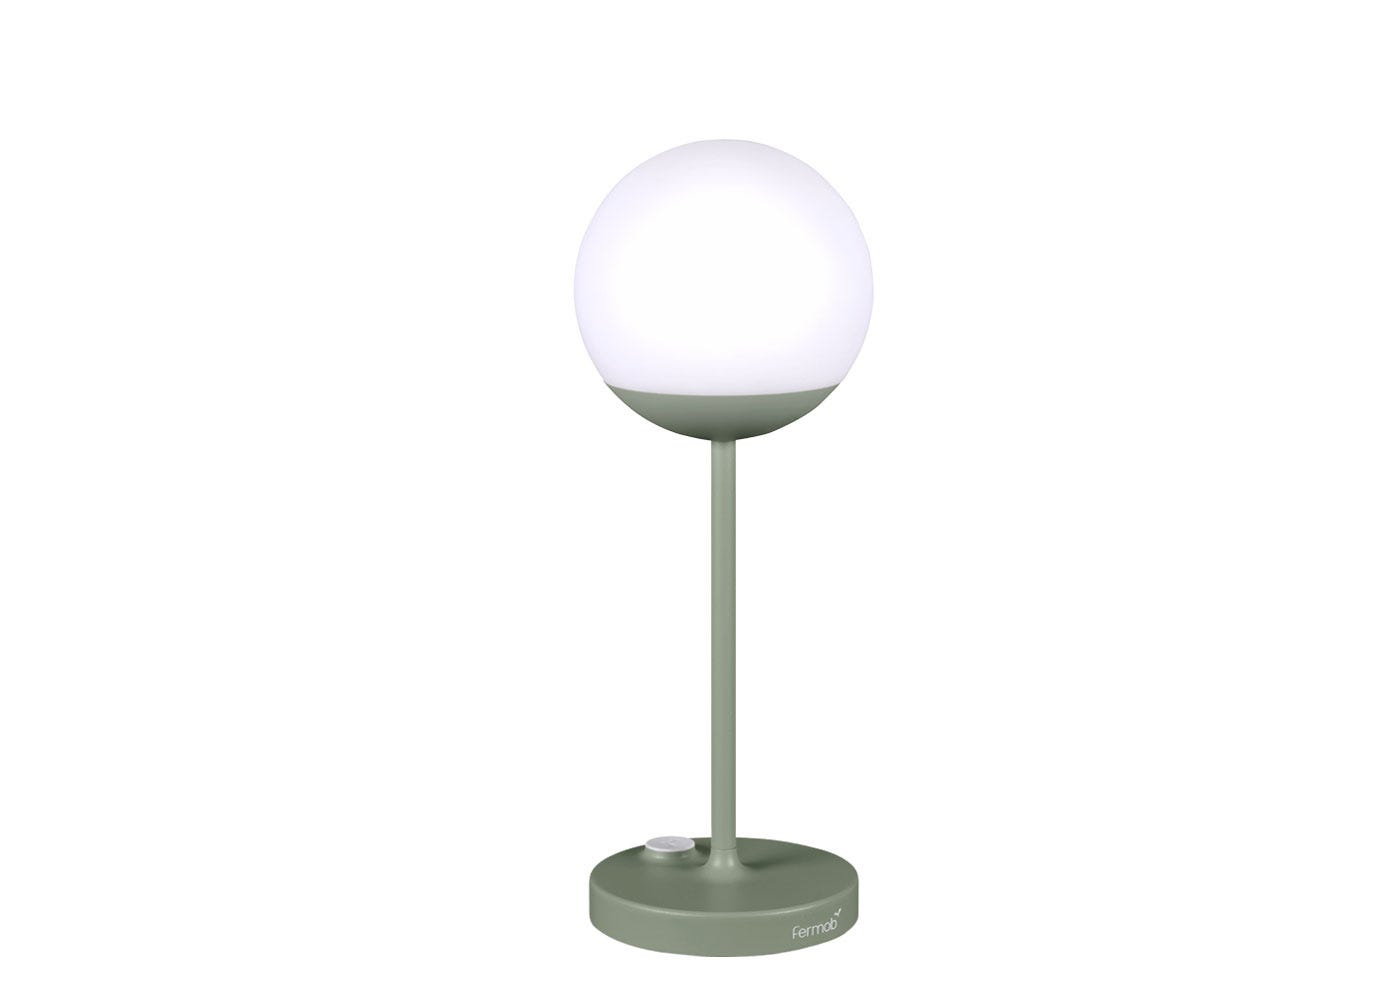 As shown: Mooon outdoor table lamp cactus finish.